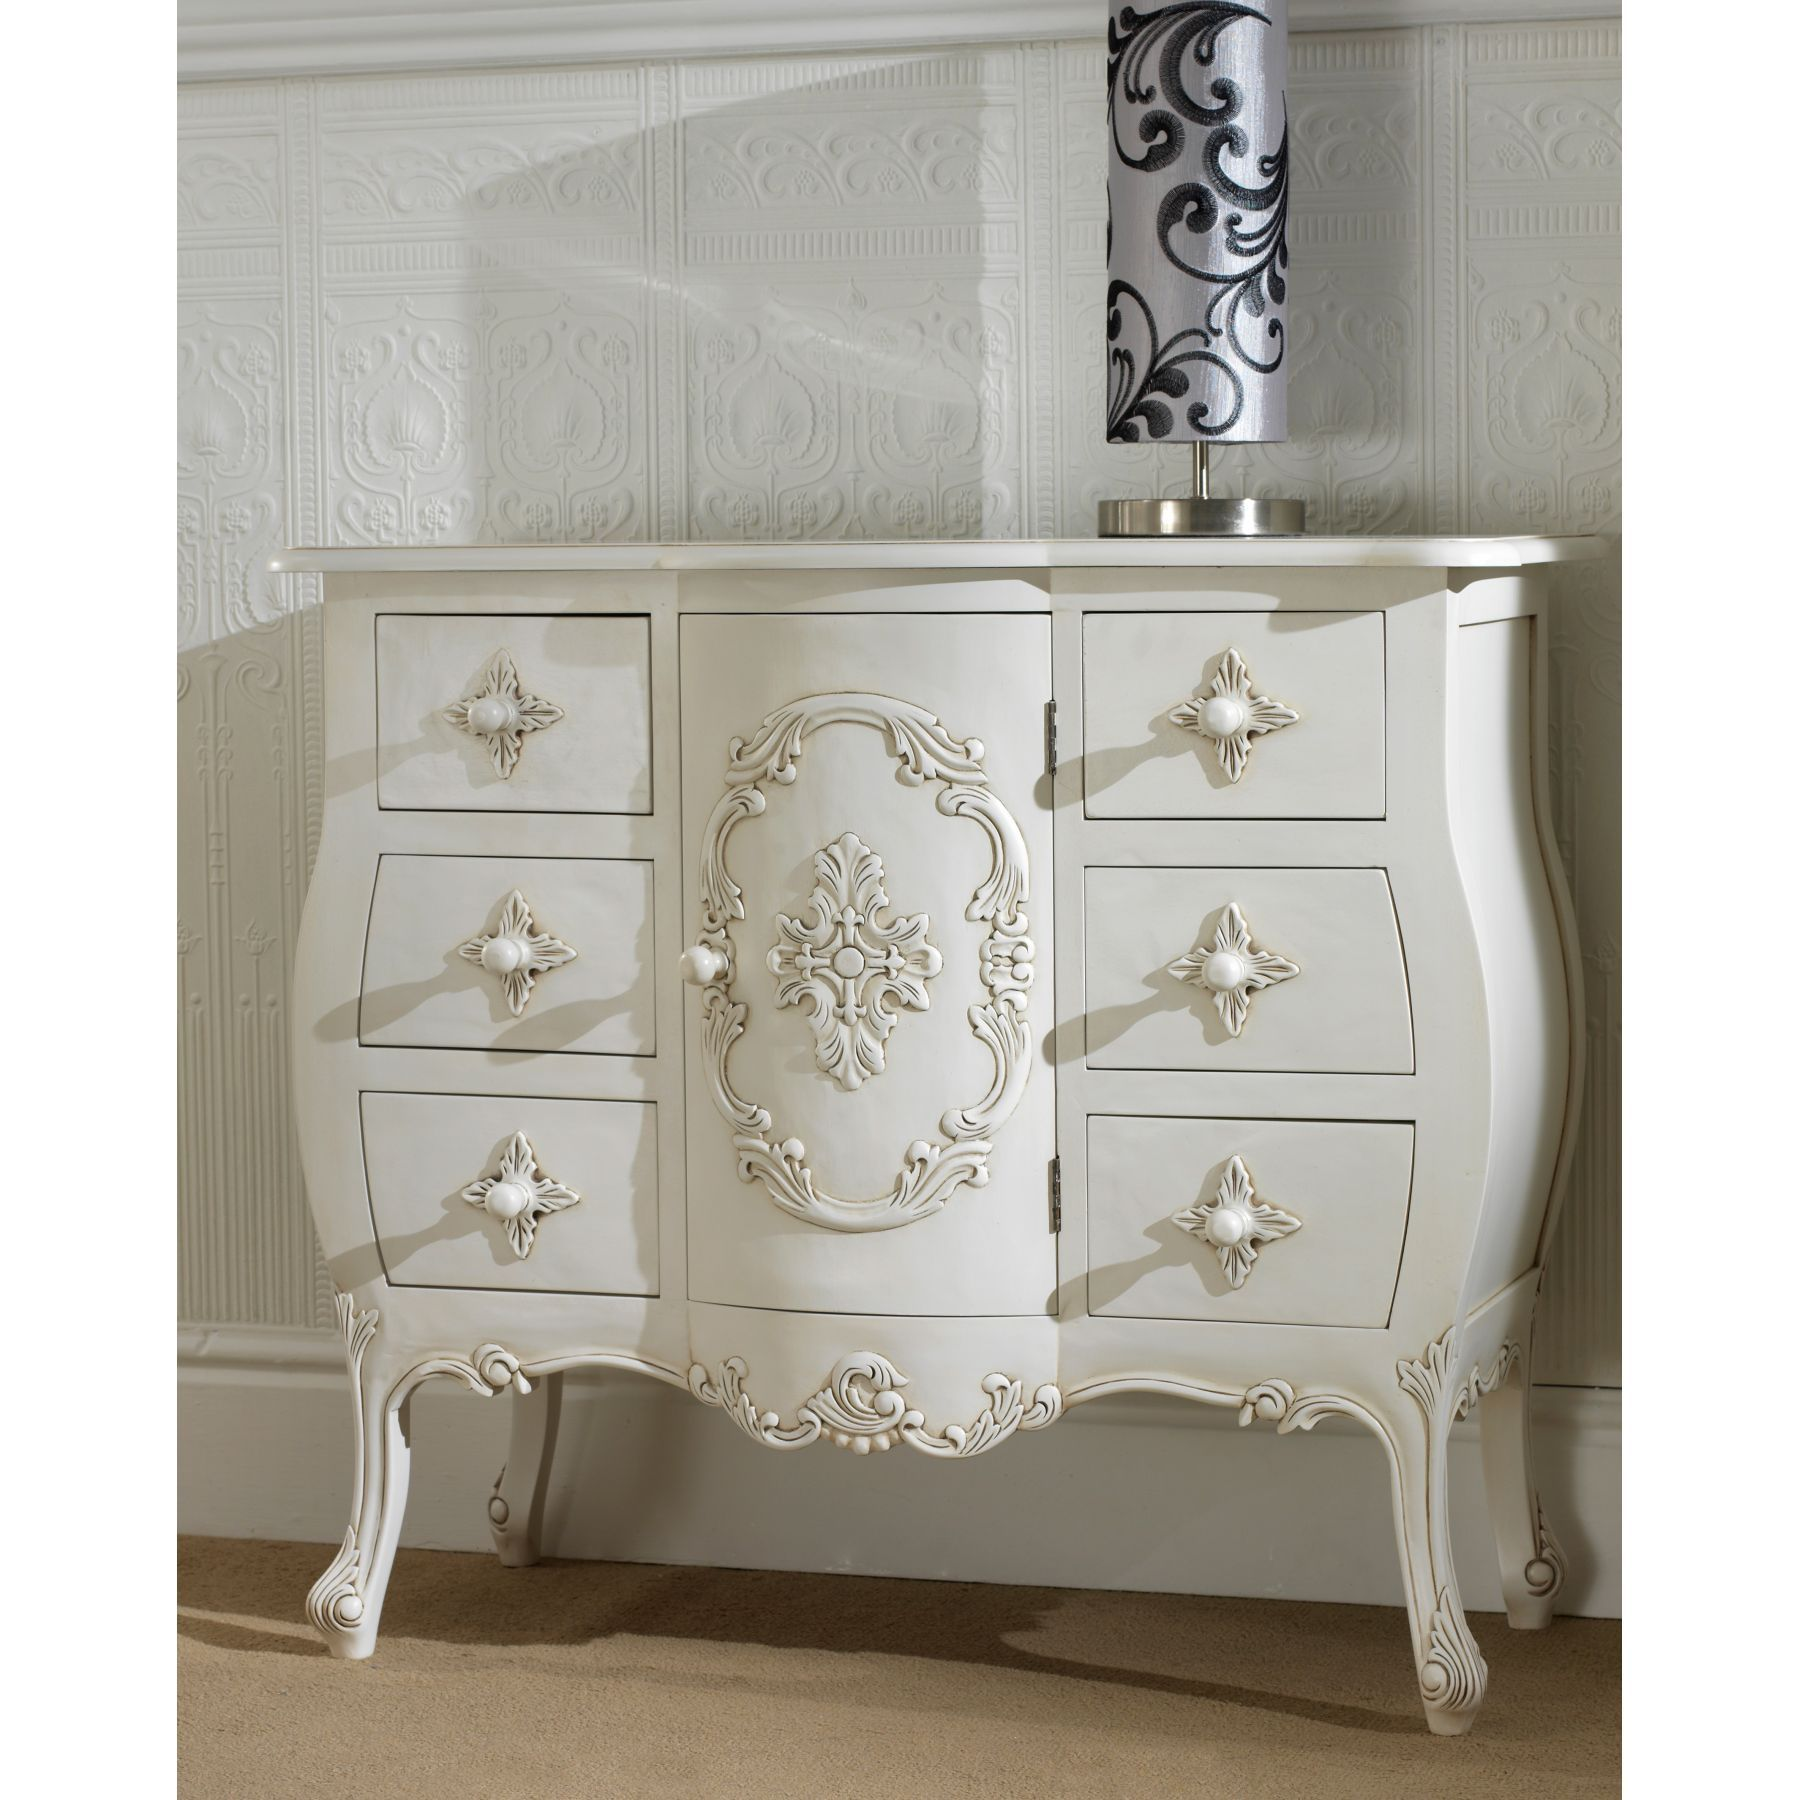 Attractive French Bedroom Furniture #4 - Antique White Dressers ...